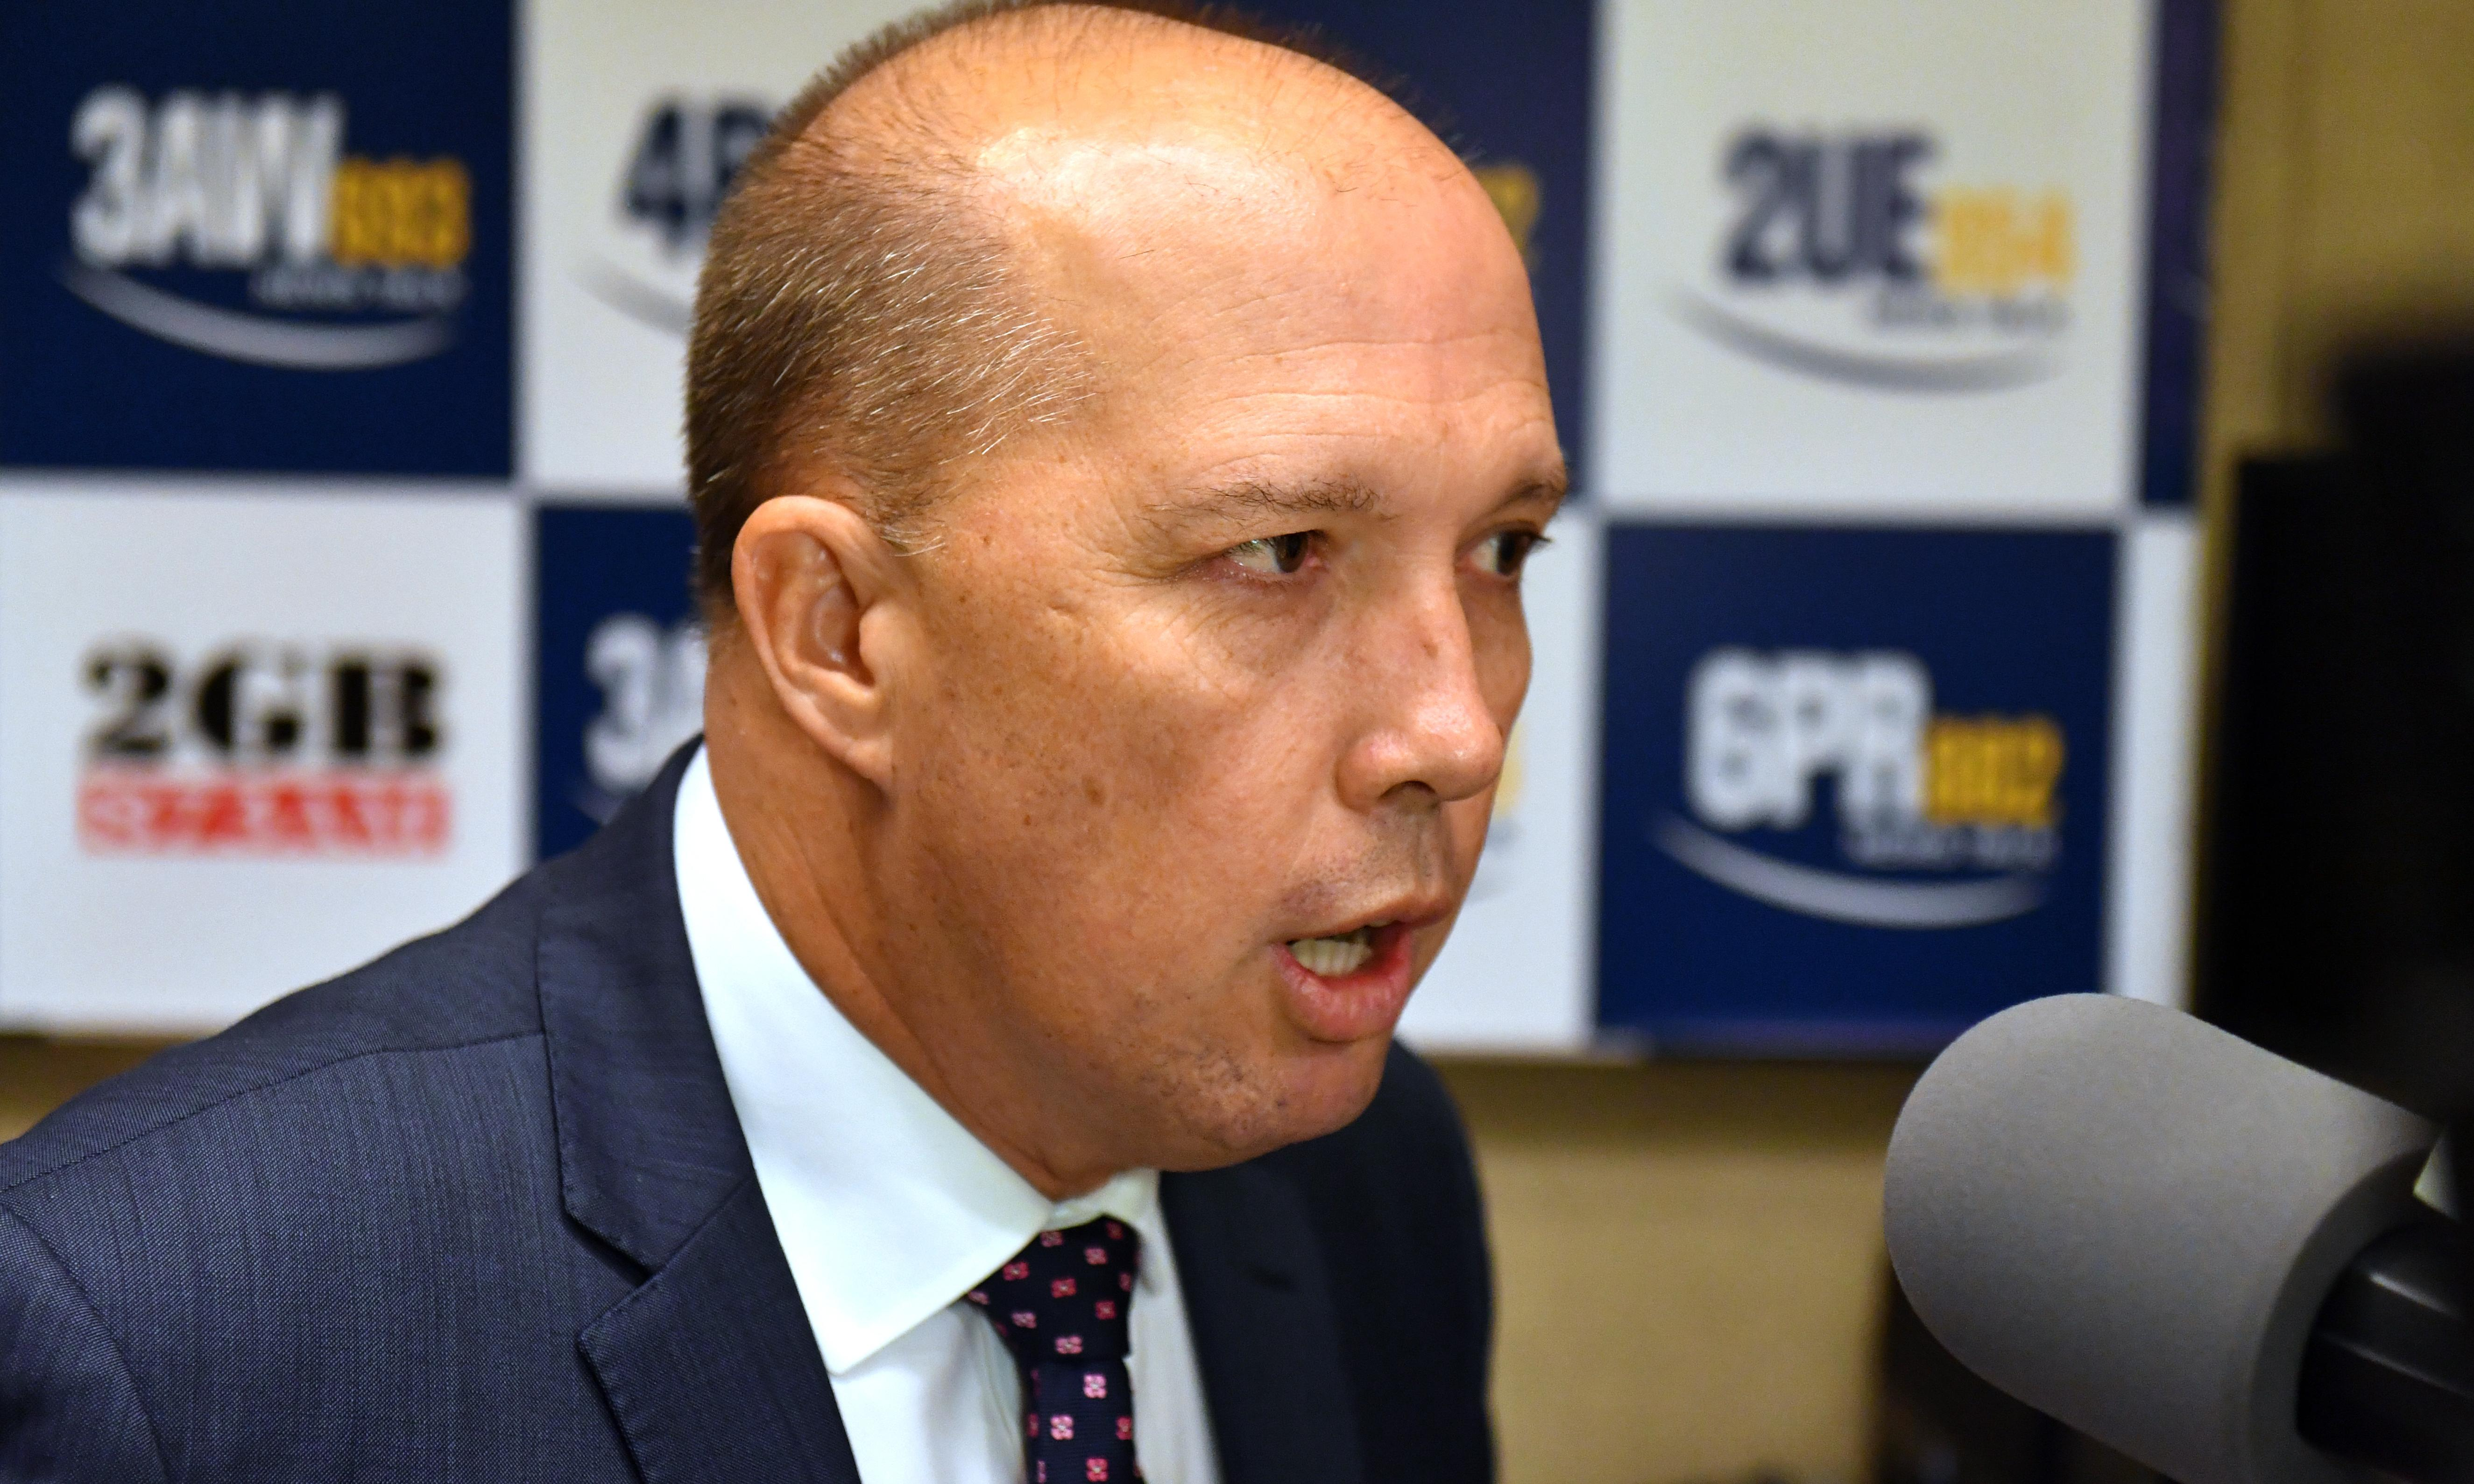 Peter Dutton says Biloela Tamil children are 'anchor babies' used to help case